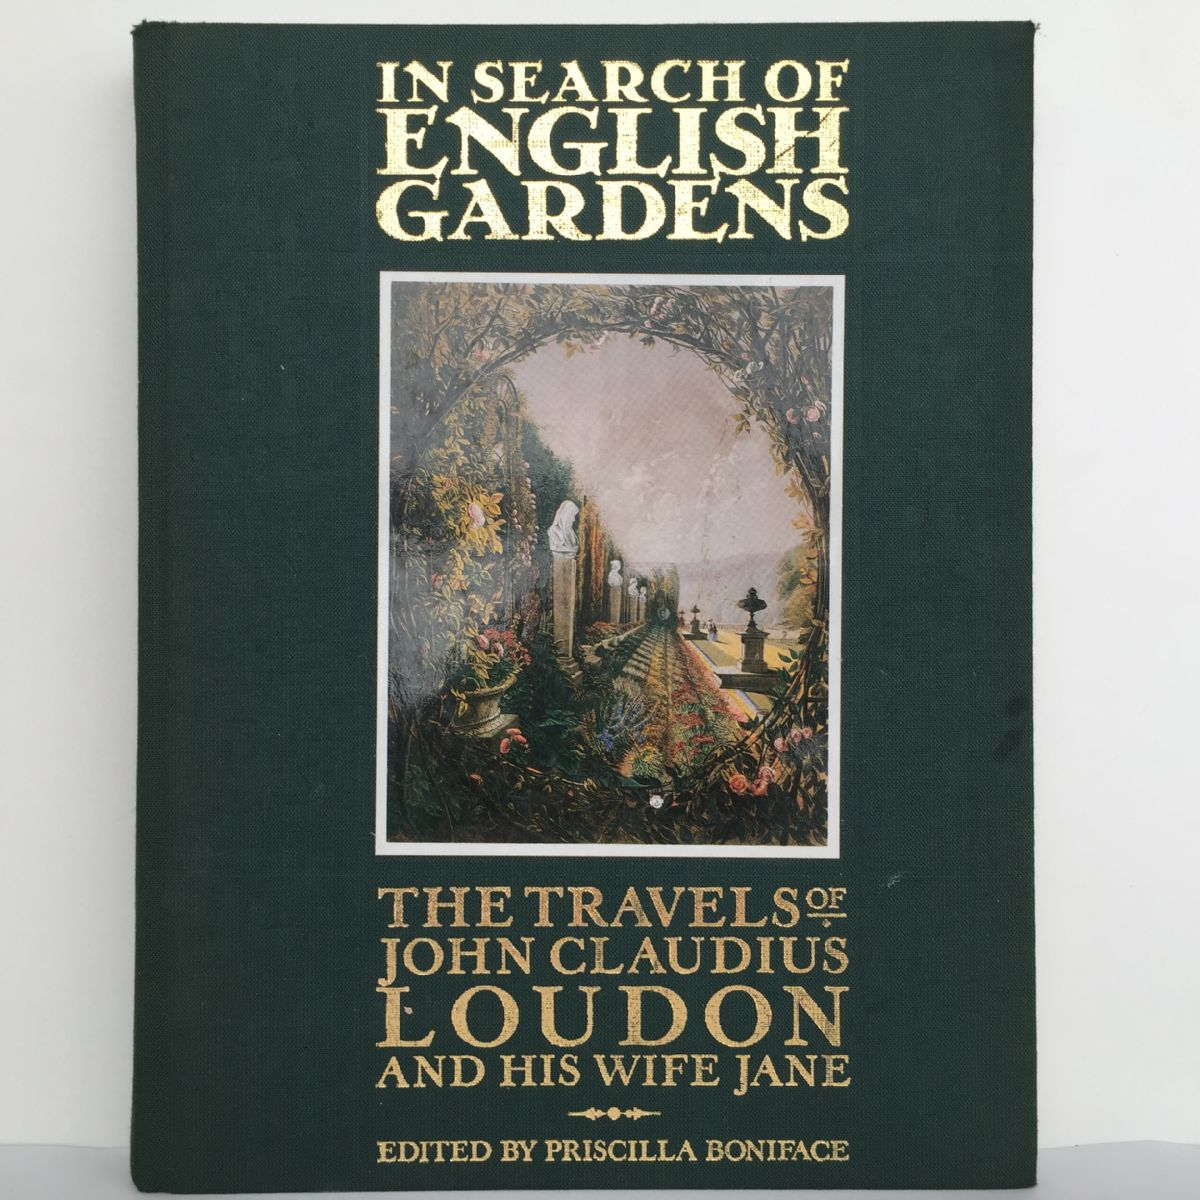 In Search of English Gardens: The travels of John Claudius Loudon and His Wife Jane